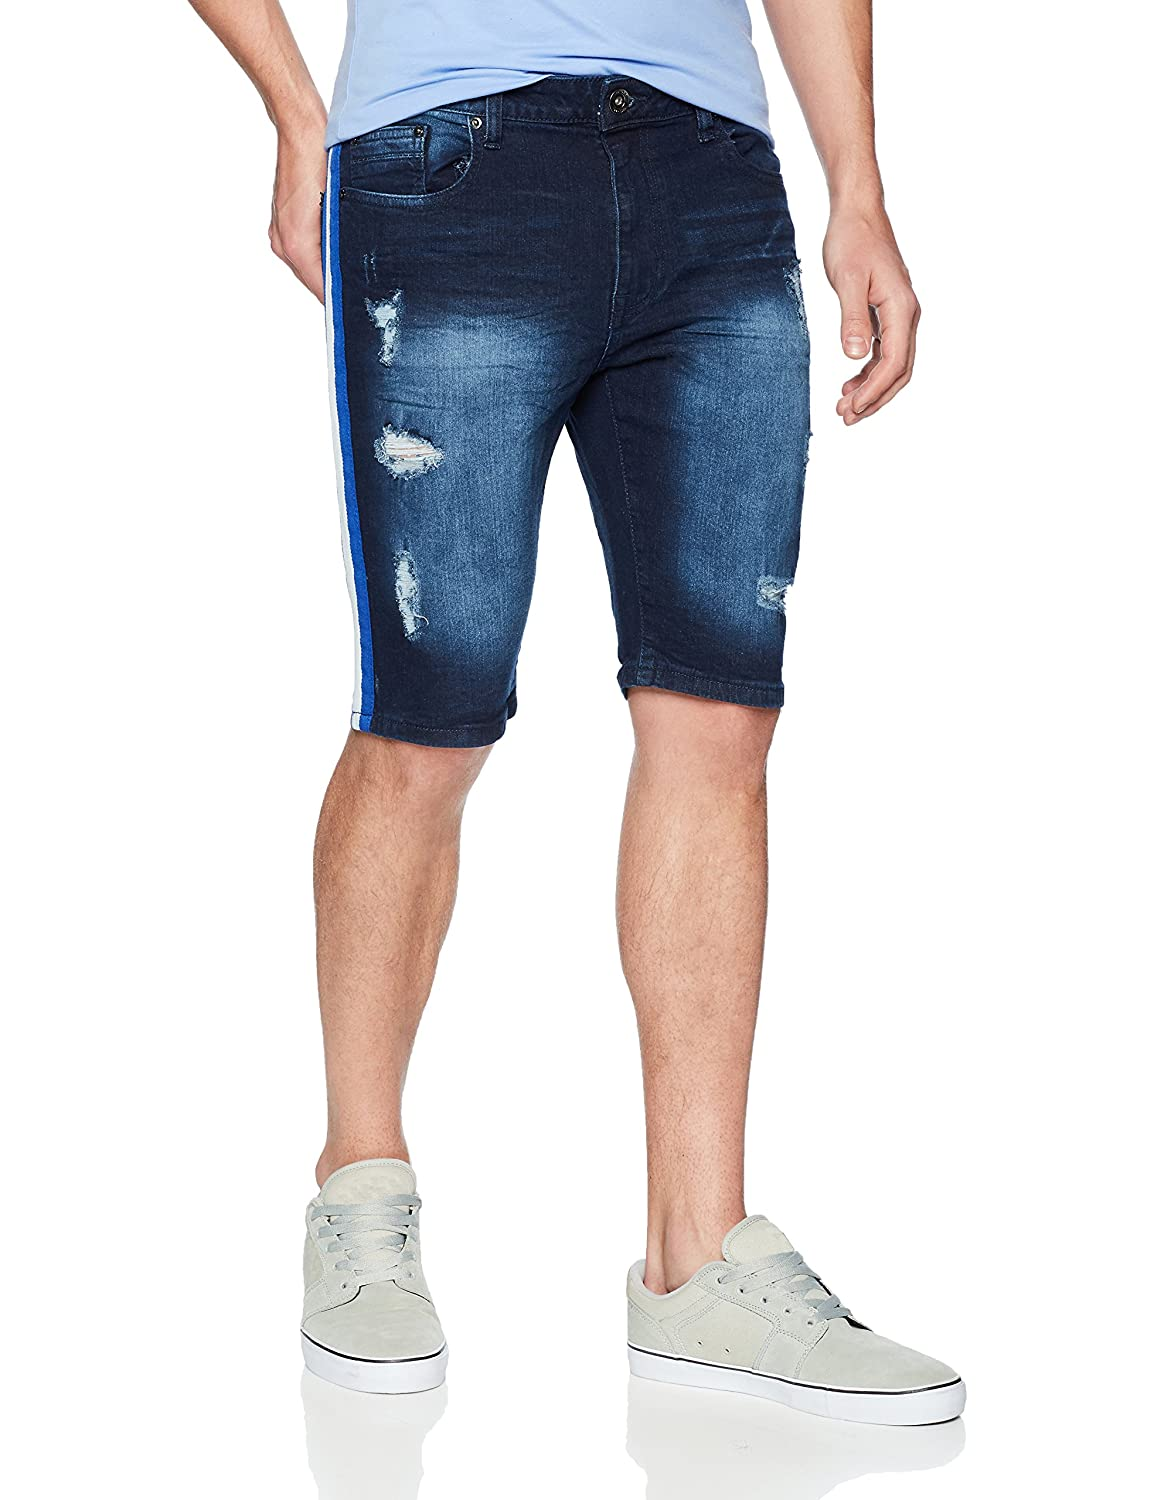 WT02 Mens Standard Stretch Denim Shorts with Destructed Ripped and Repaired